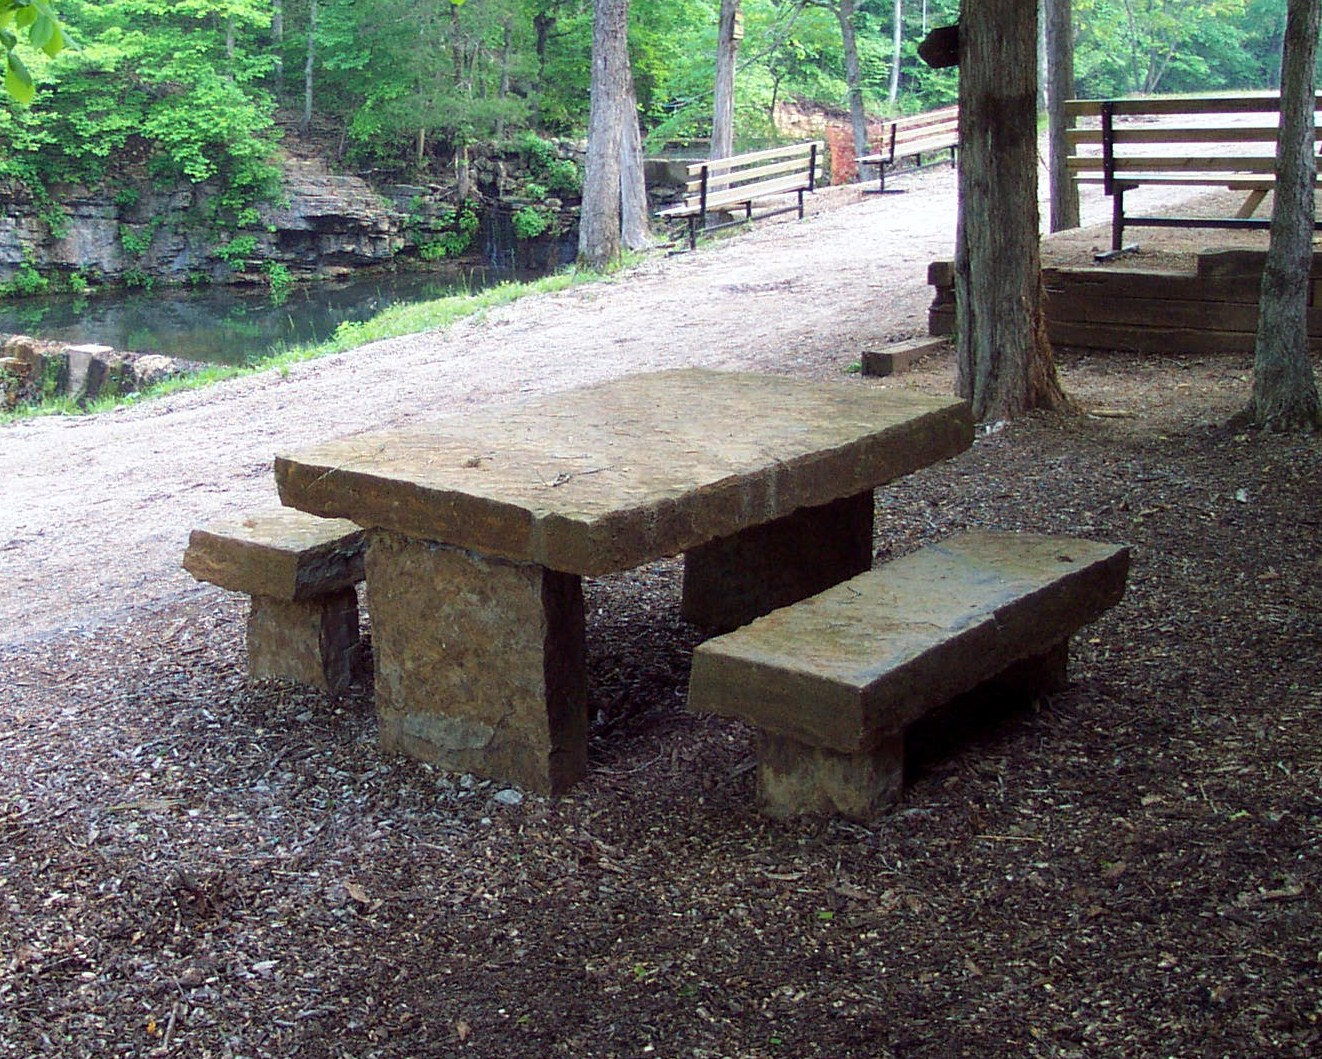 Rustic Stone Table and Benches